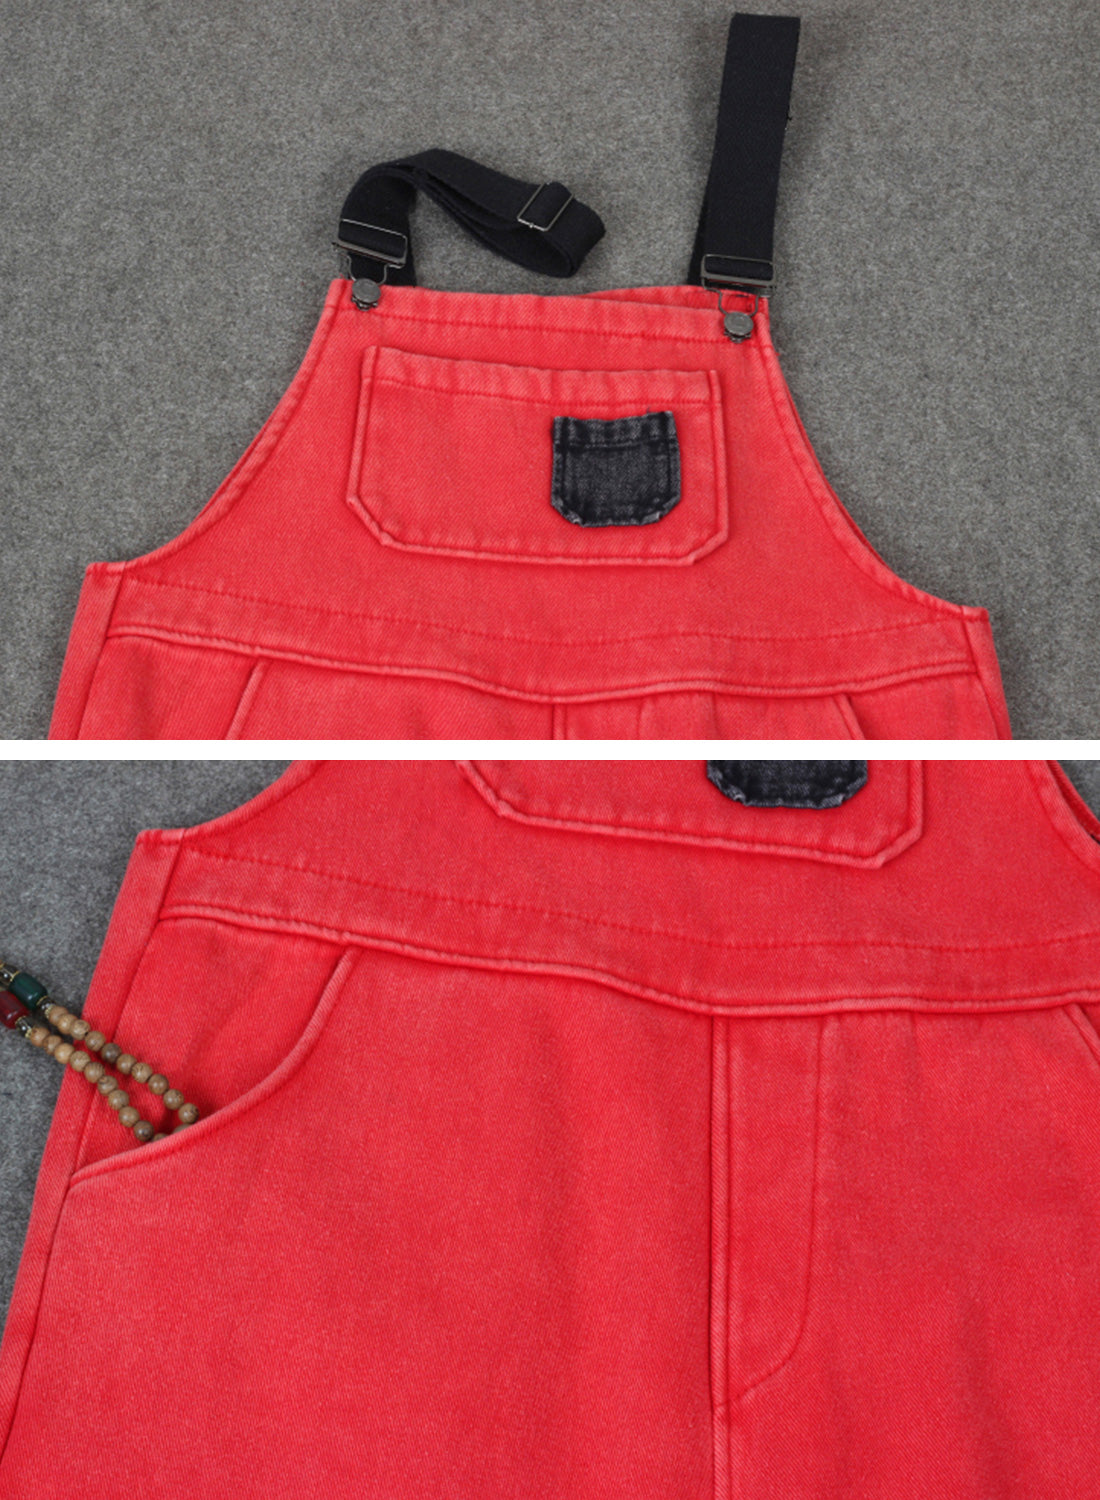 Aiming Higher Cotton Overalls Dungaree Details 1